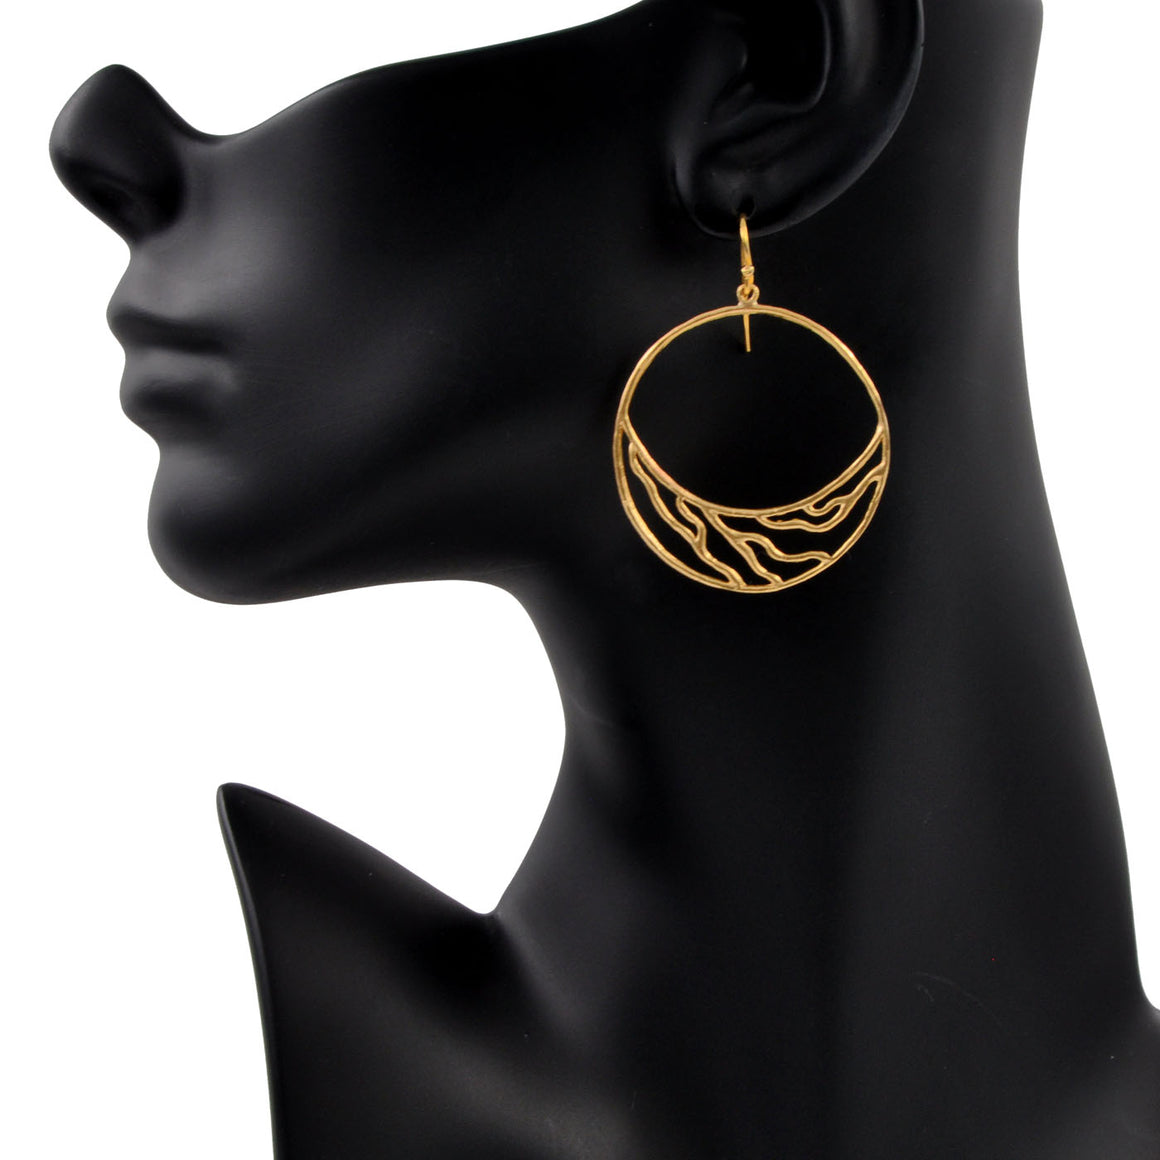 Intricate Branches Crescent Hoop Earrings - 24K Gold Plated